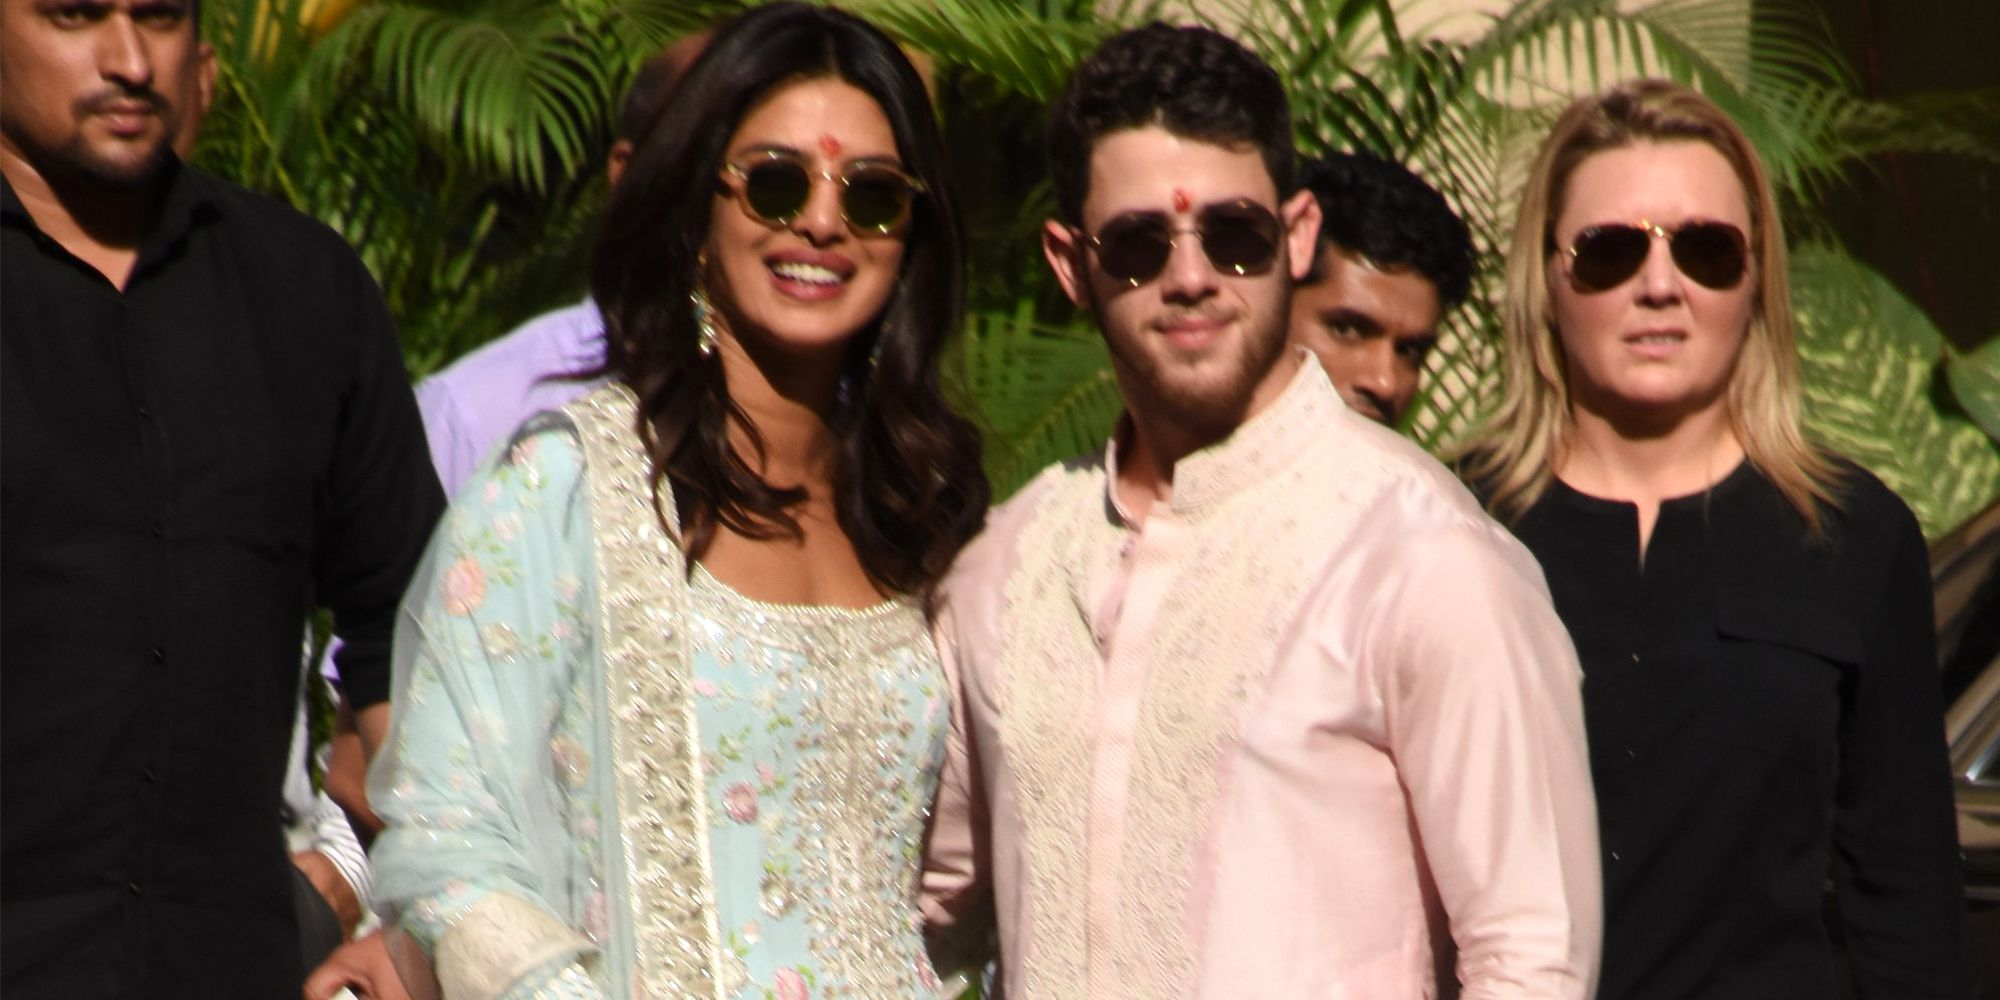 EXCLUSIVE: Priyanka Chopra and Nick Jonas seen ahead of their wedding